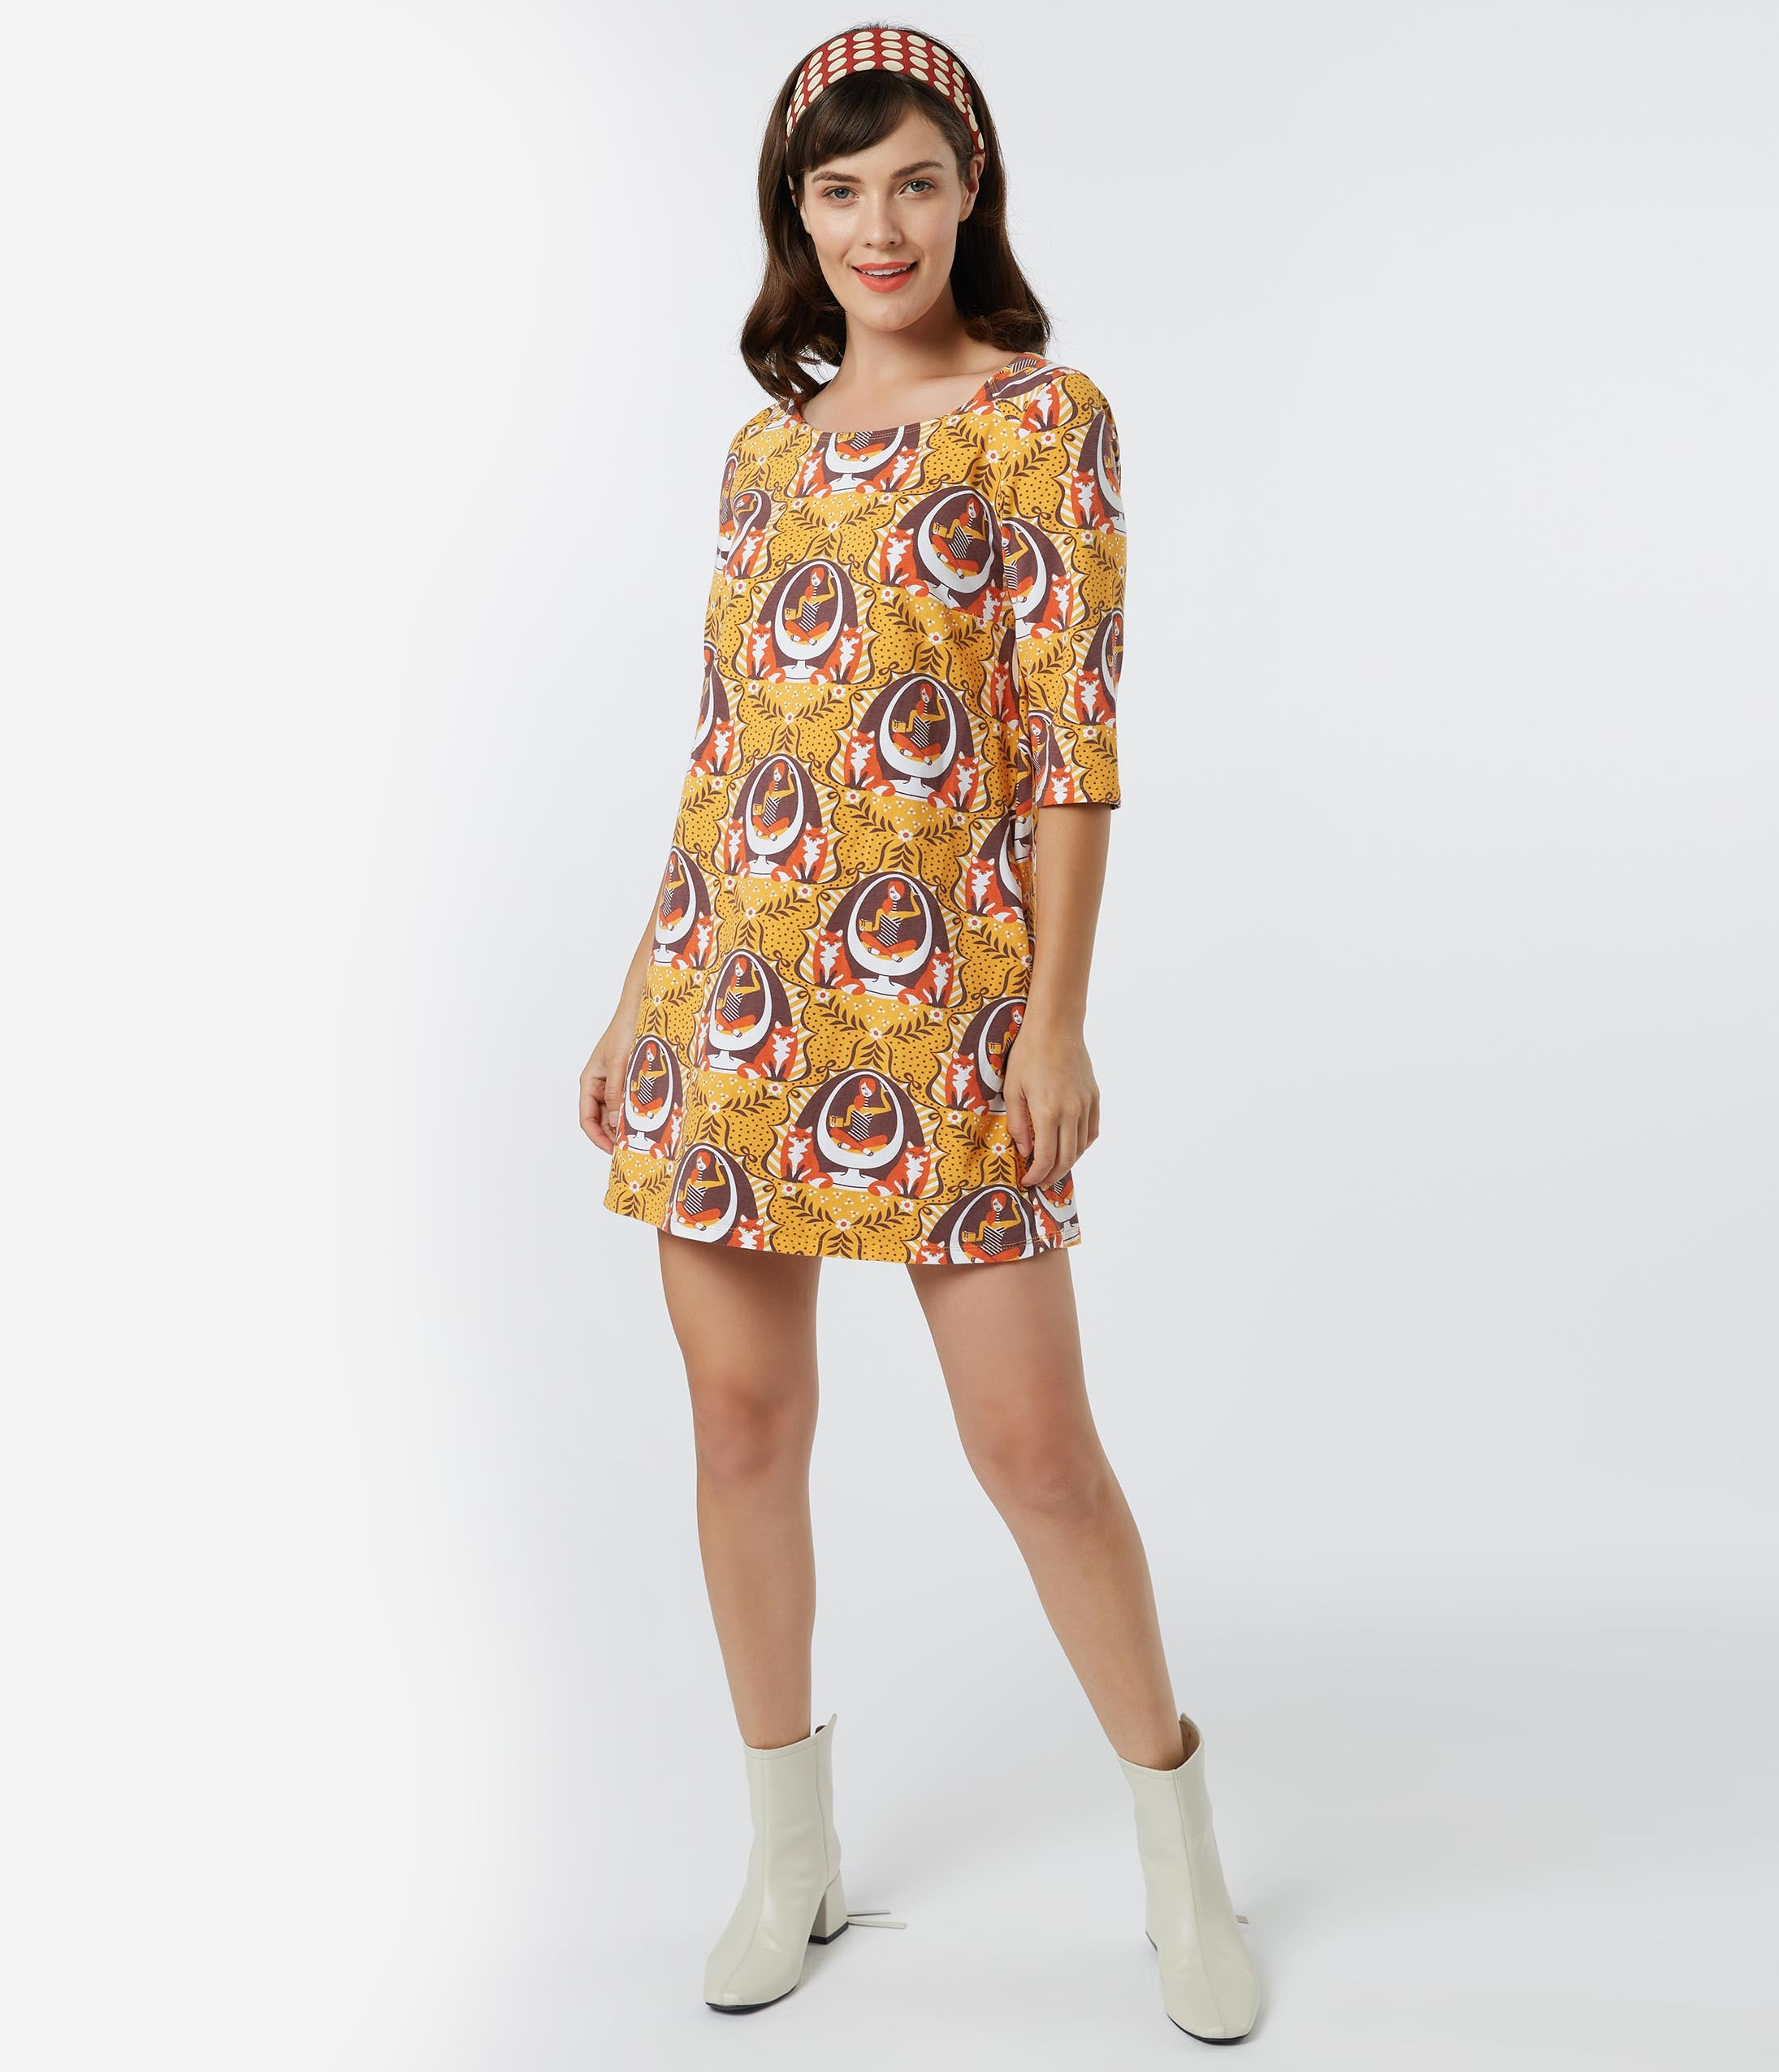 Vintage Style Dresses | Vintage Inspired Dresses 1960S Style A Well Protected Lass Print Tunic Dress $52.00 AT vintagedancer.com